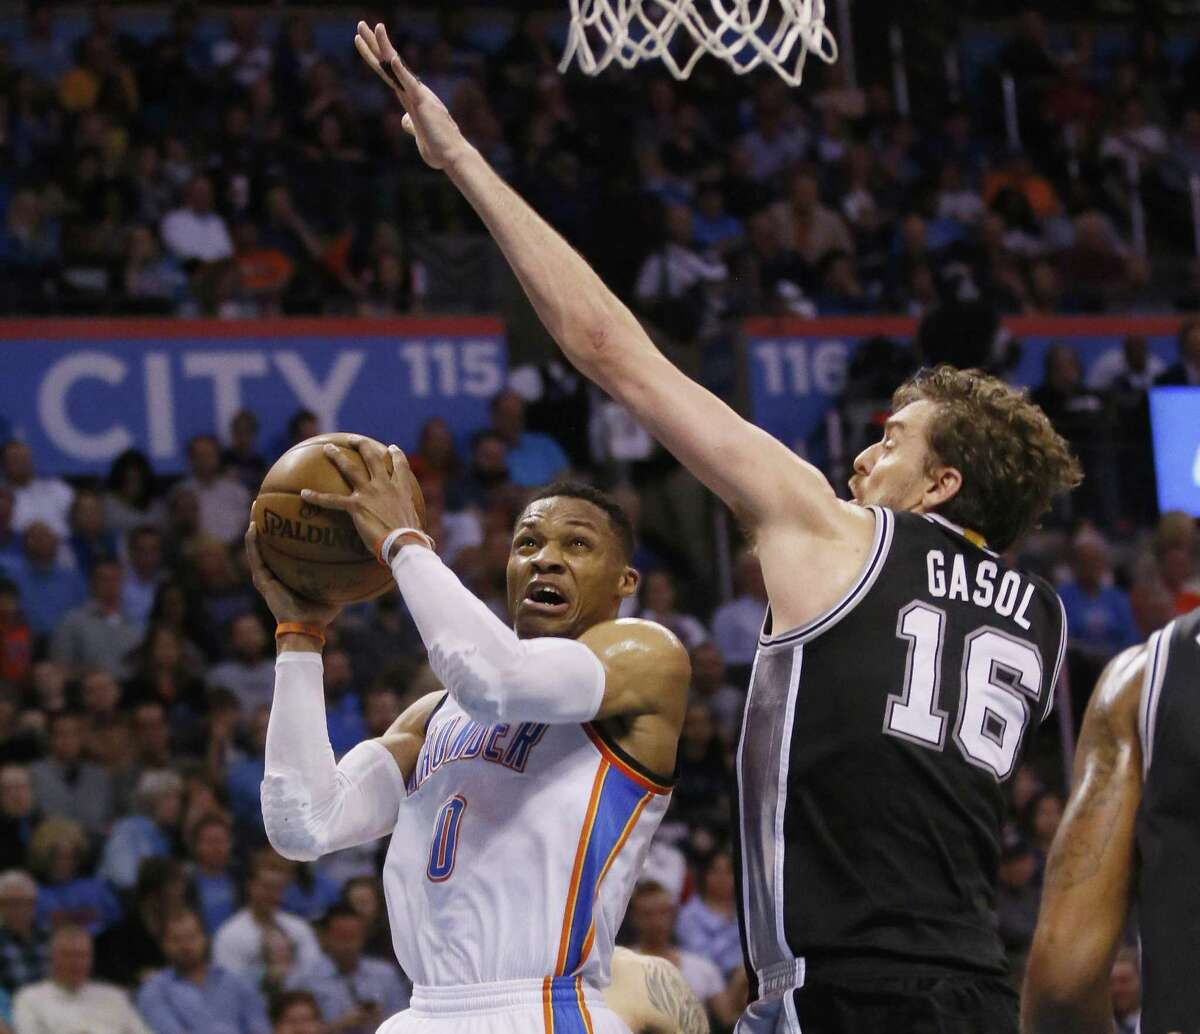 Oklahoma City Thunder guard Russell Westbrook (0) goes up for a shot as San Antonio Spurs center Pau Gasol (16) defends in the second quarter of an NBA basketball game in Oklahoma City, Friday, March 31, 2017. (AP Photo/Sue Ogrocki)